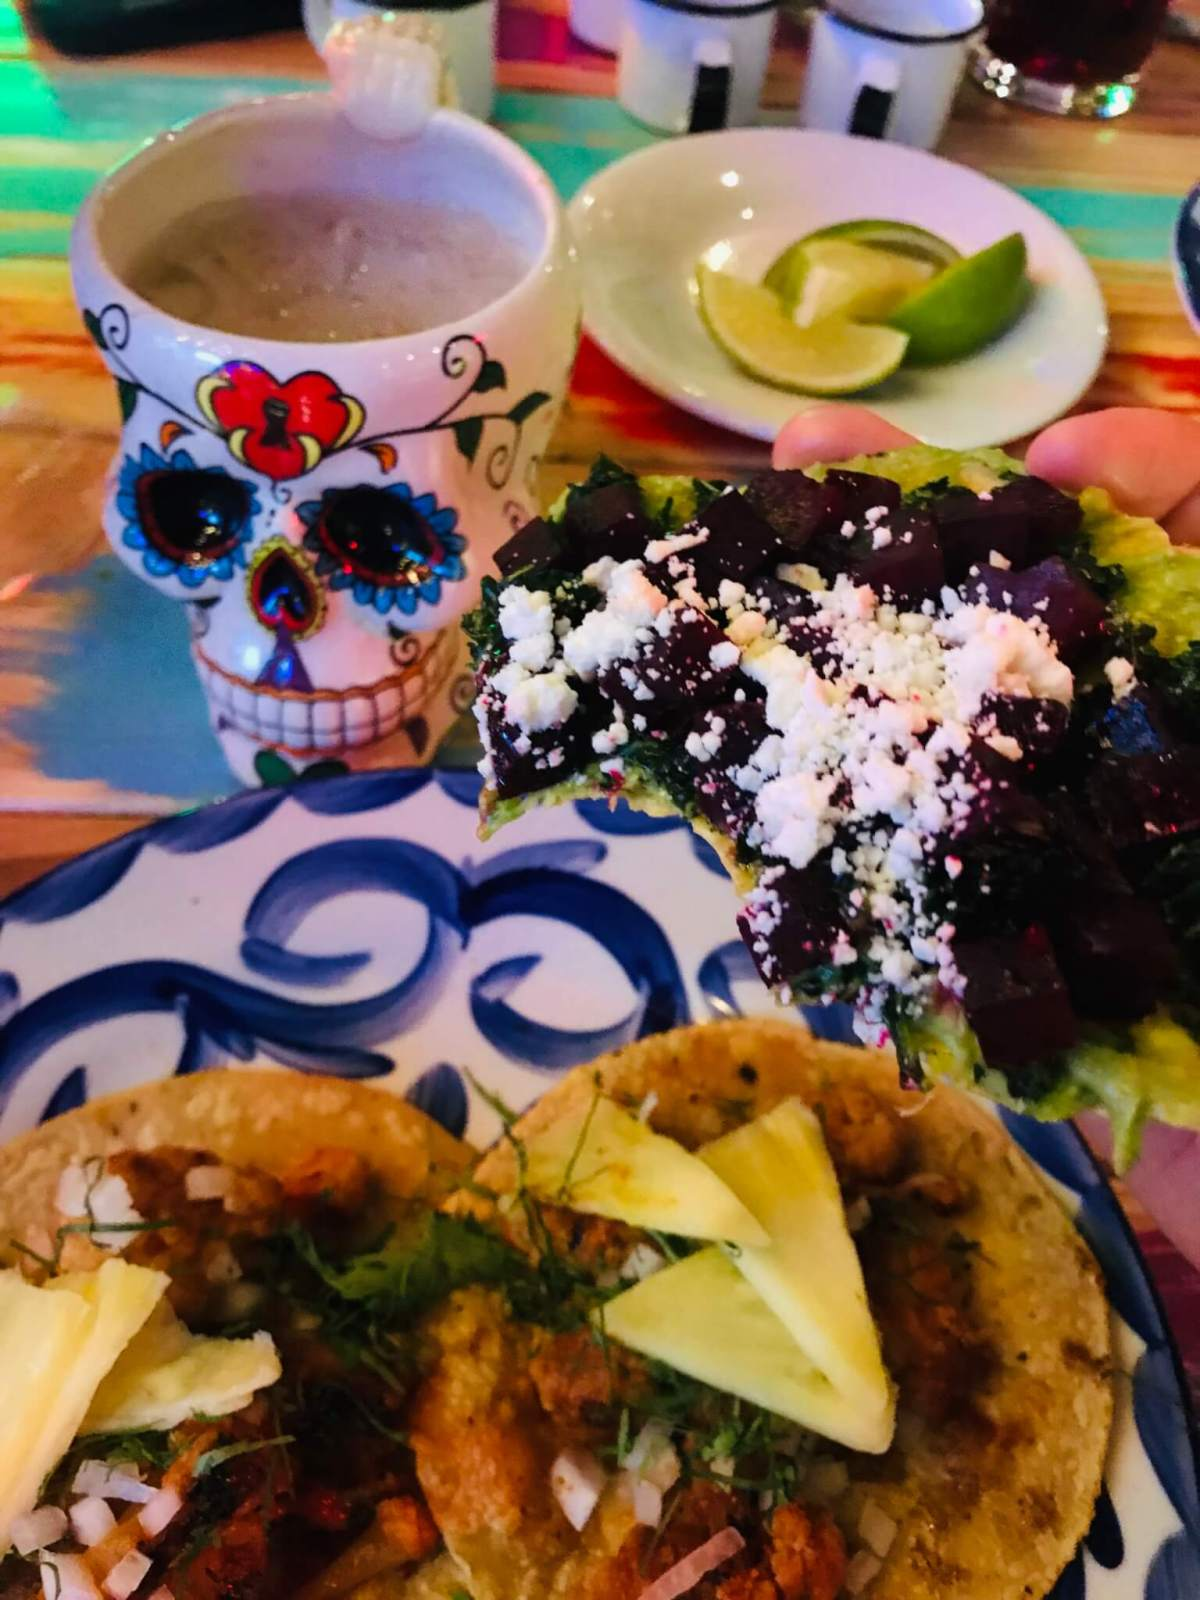 Vegan tacos and vegetarian tostada | Vegan restaurants in Mexico City